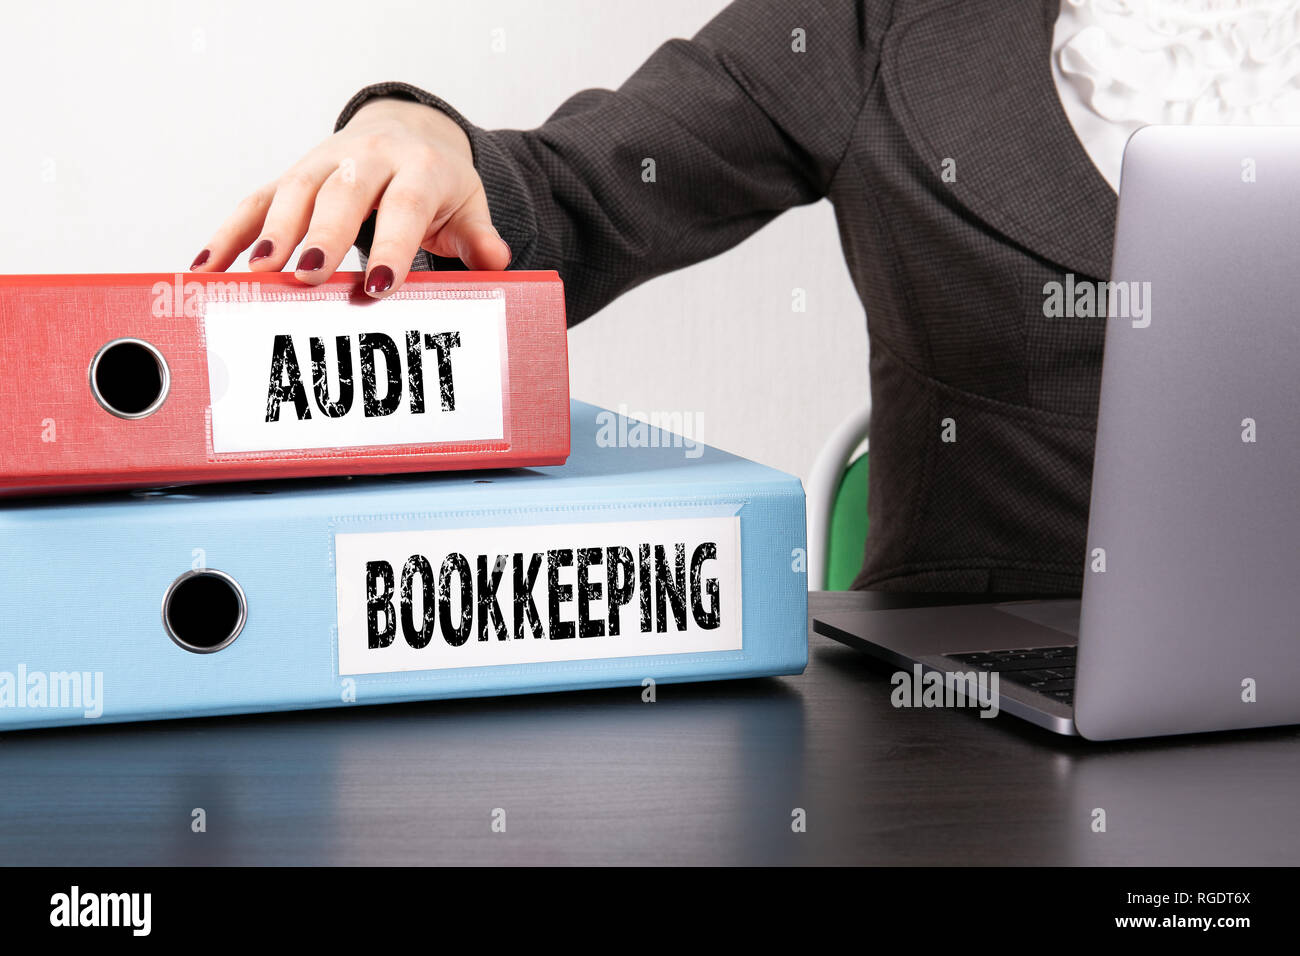 Audit and Bookkeeping concept - Stock Image